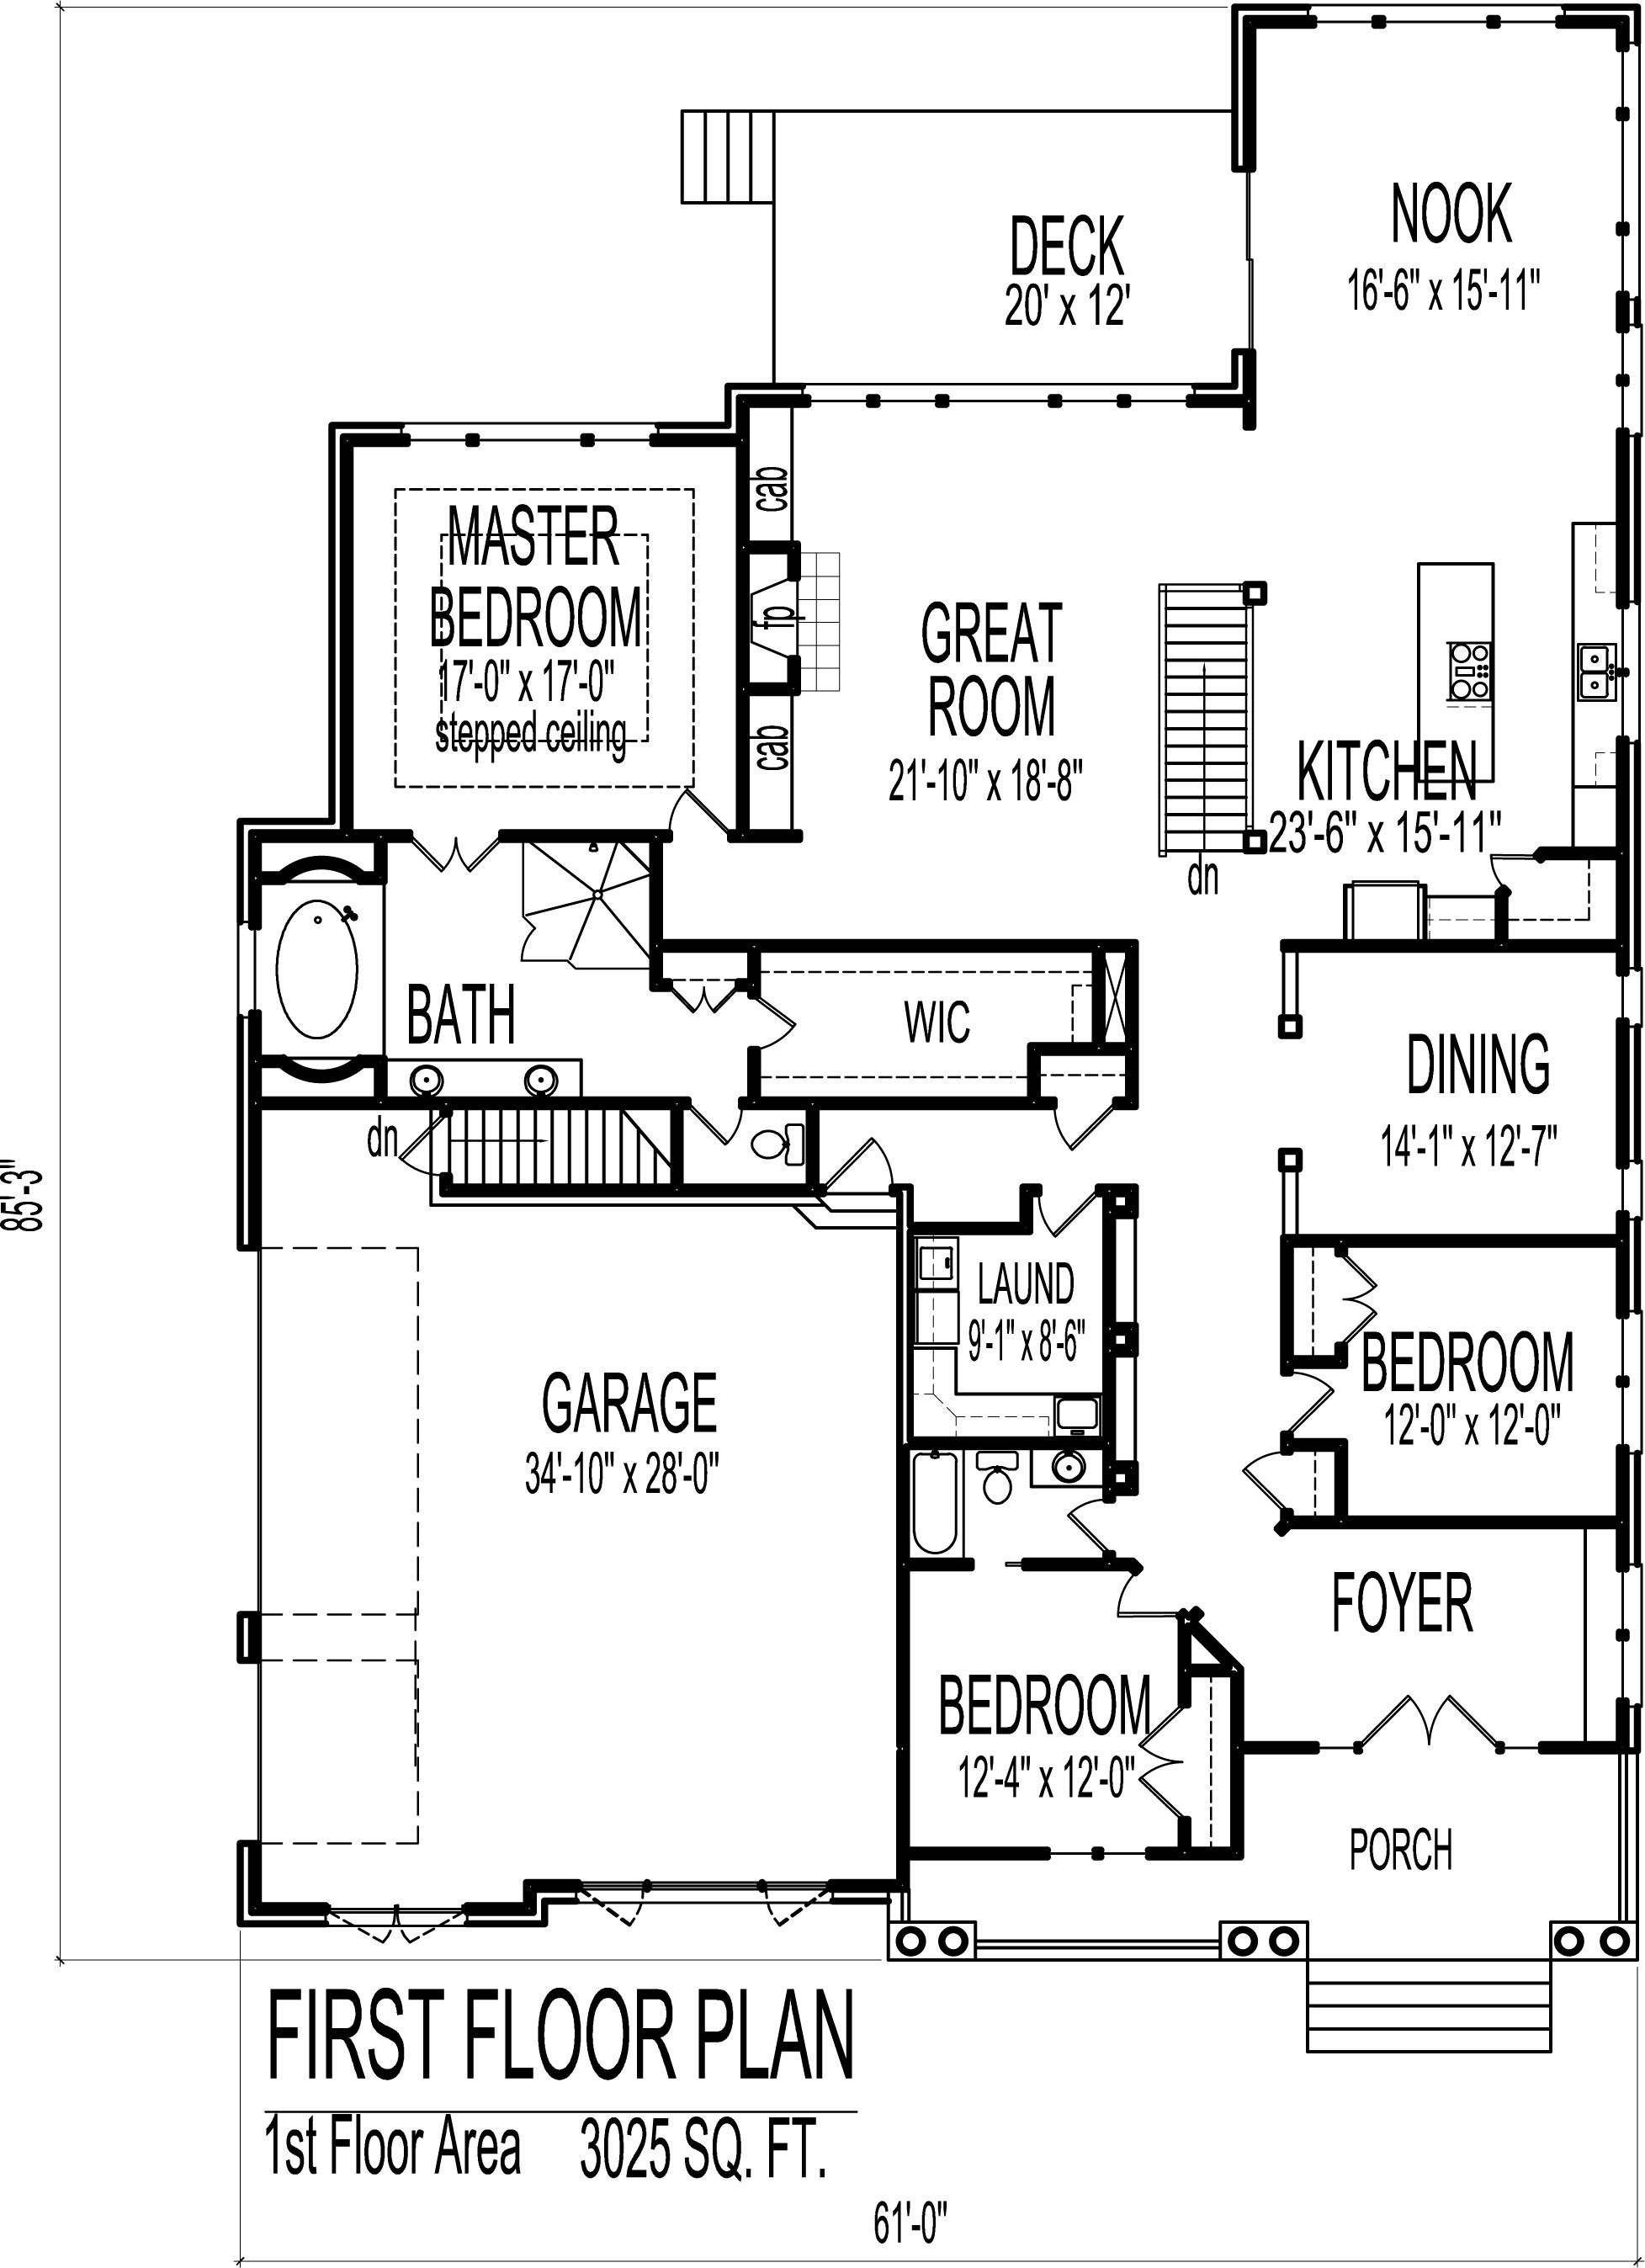 Front Elevation Drawing At Getdrawings Com Free For